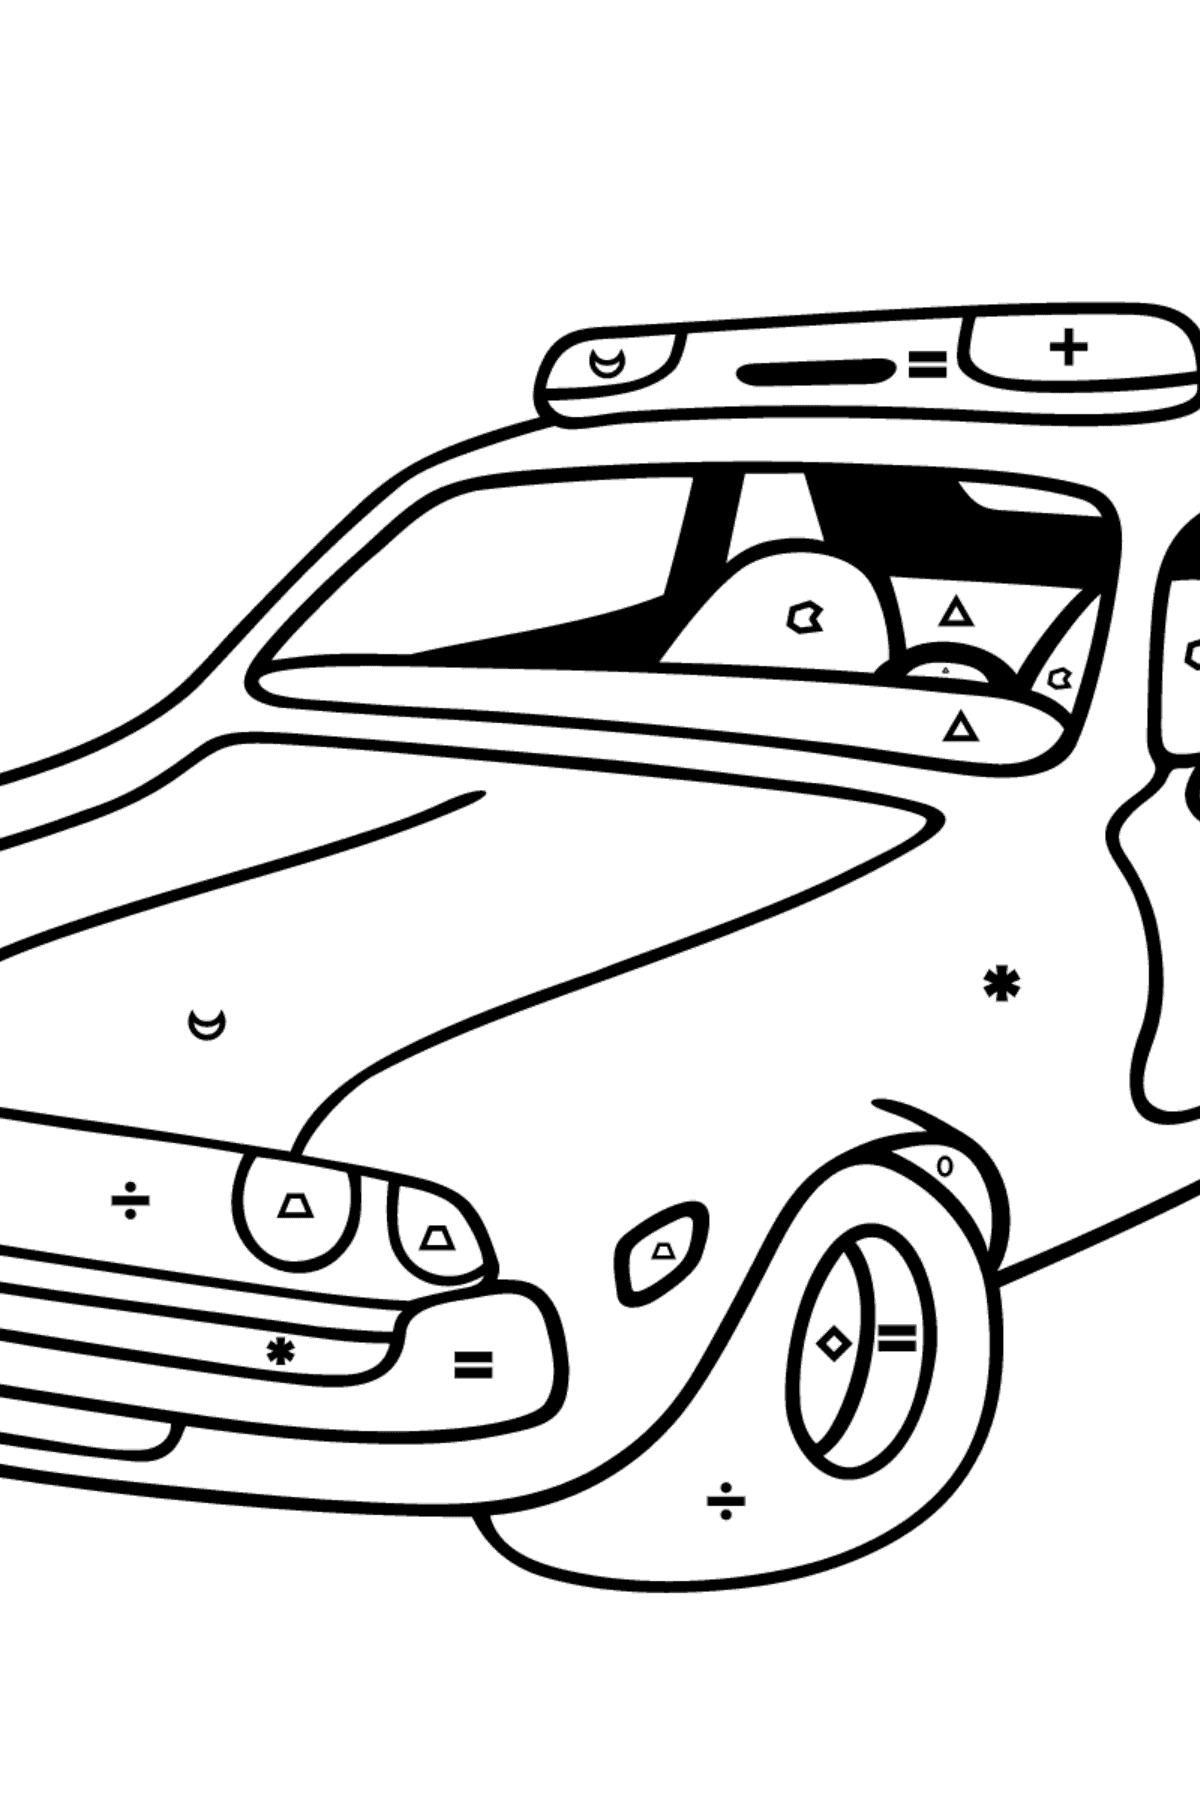 Coloring Page - A Red and White Police Car for Children  - Color by Symbols and Geometric Shapes